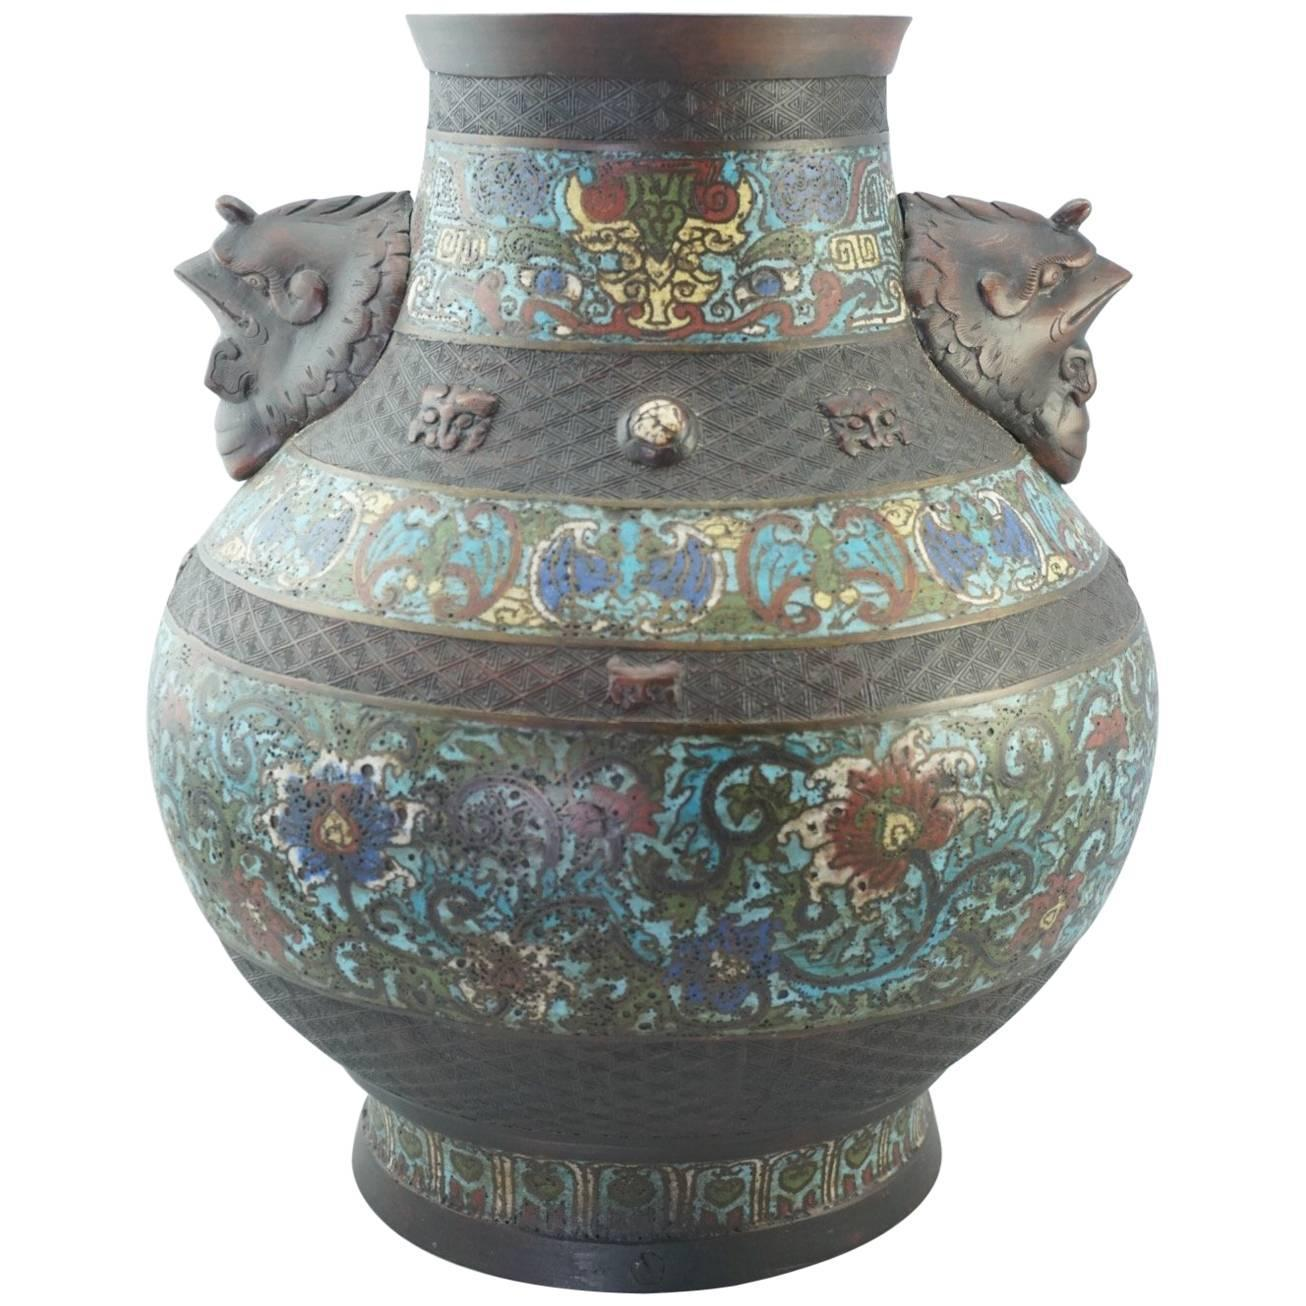 Chinese export vases and vessels 167 for sale at 1stdibs qing chinese cloisonne bronze decorated vase 19th century reviewsmspy